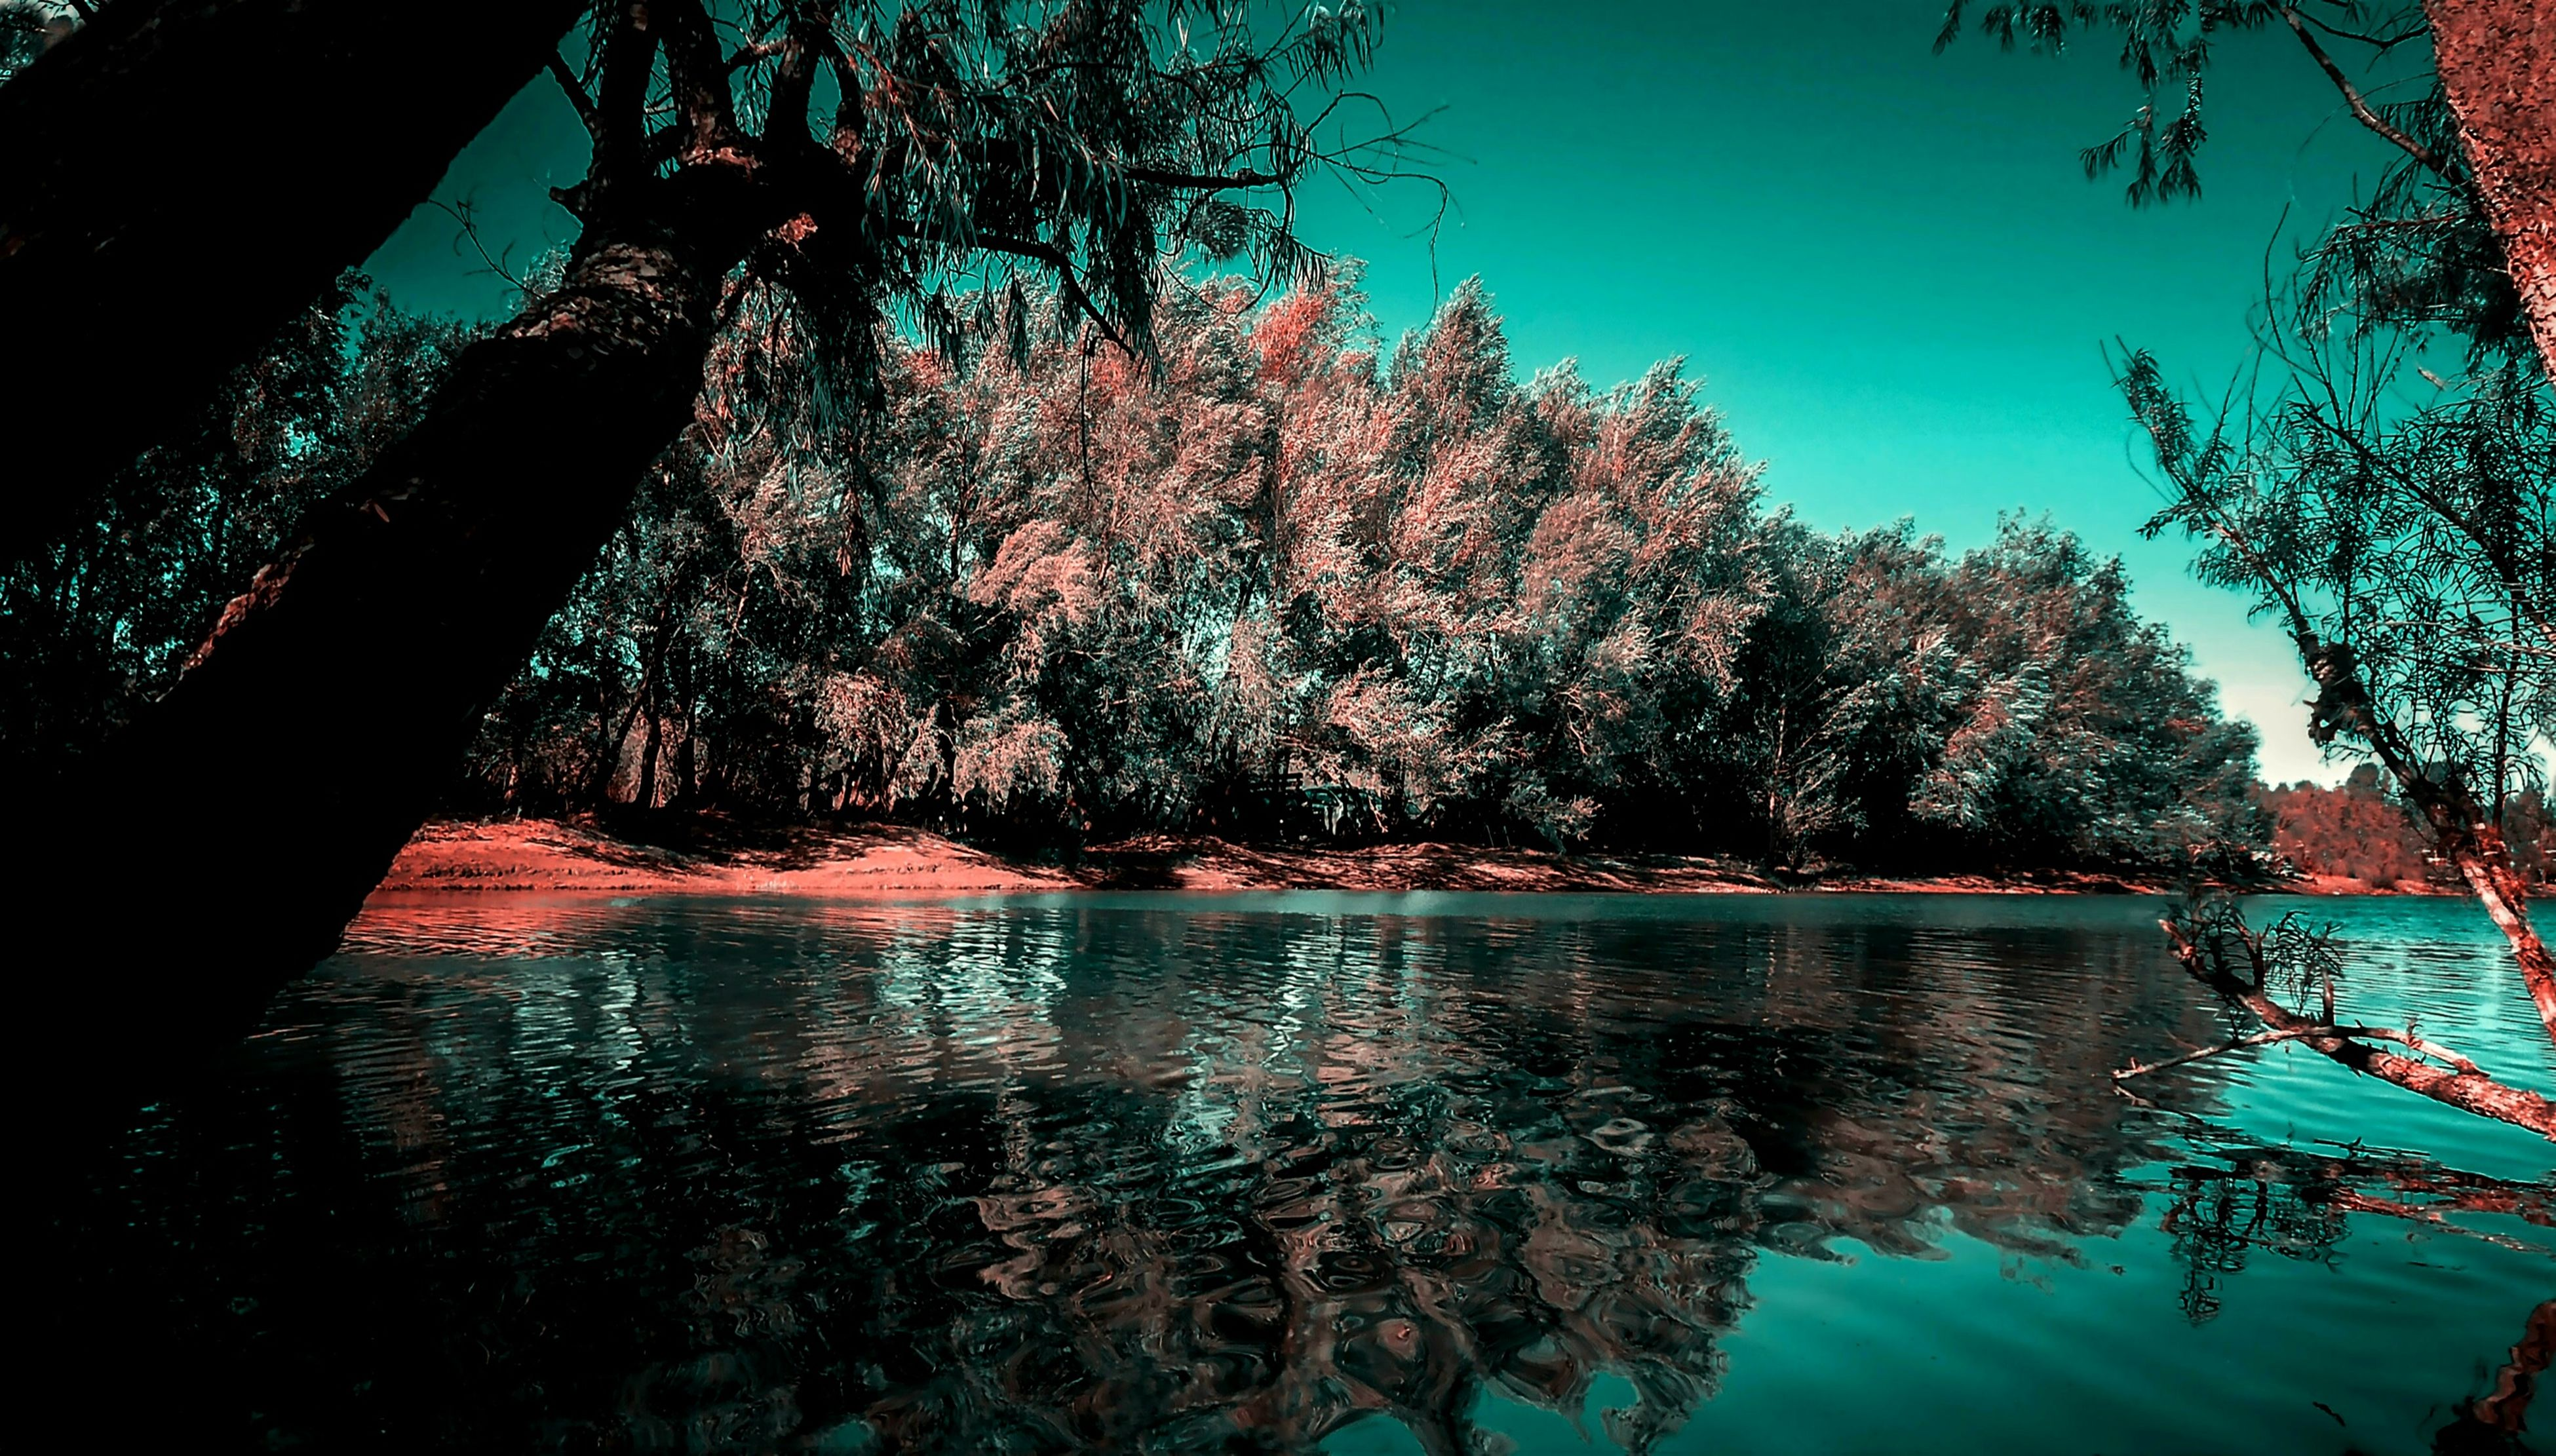 water, tree, waterfront, nature, tranquility, beauty in nature, tranquil scene, lake, scenics, no people, outdoors, day, sky